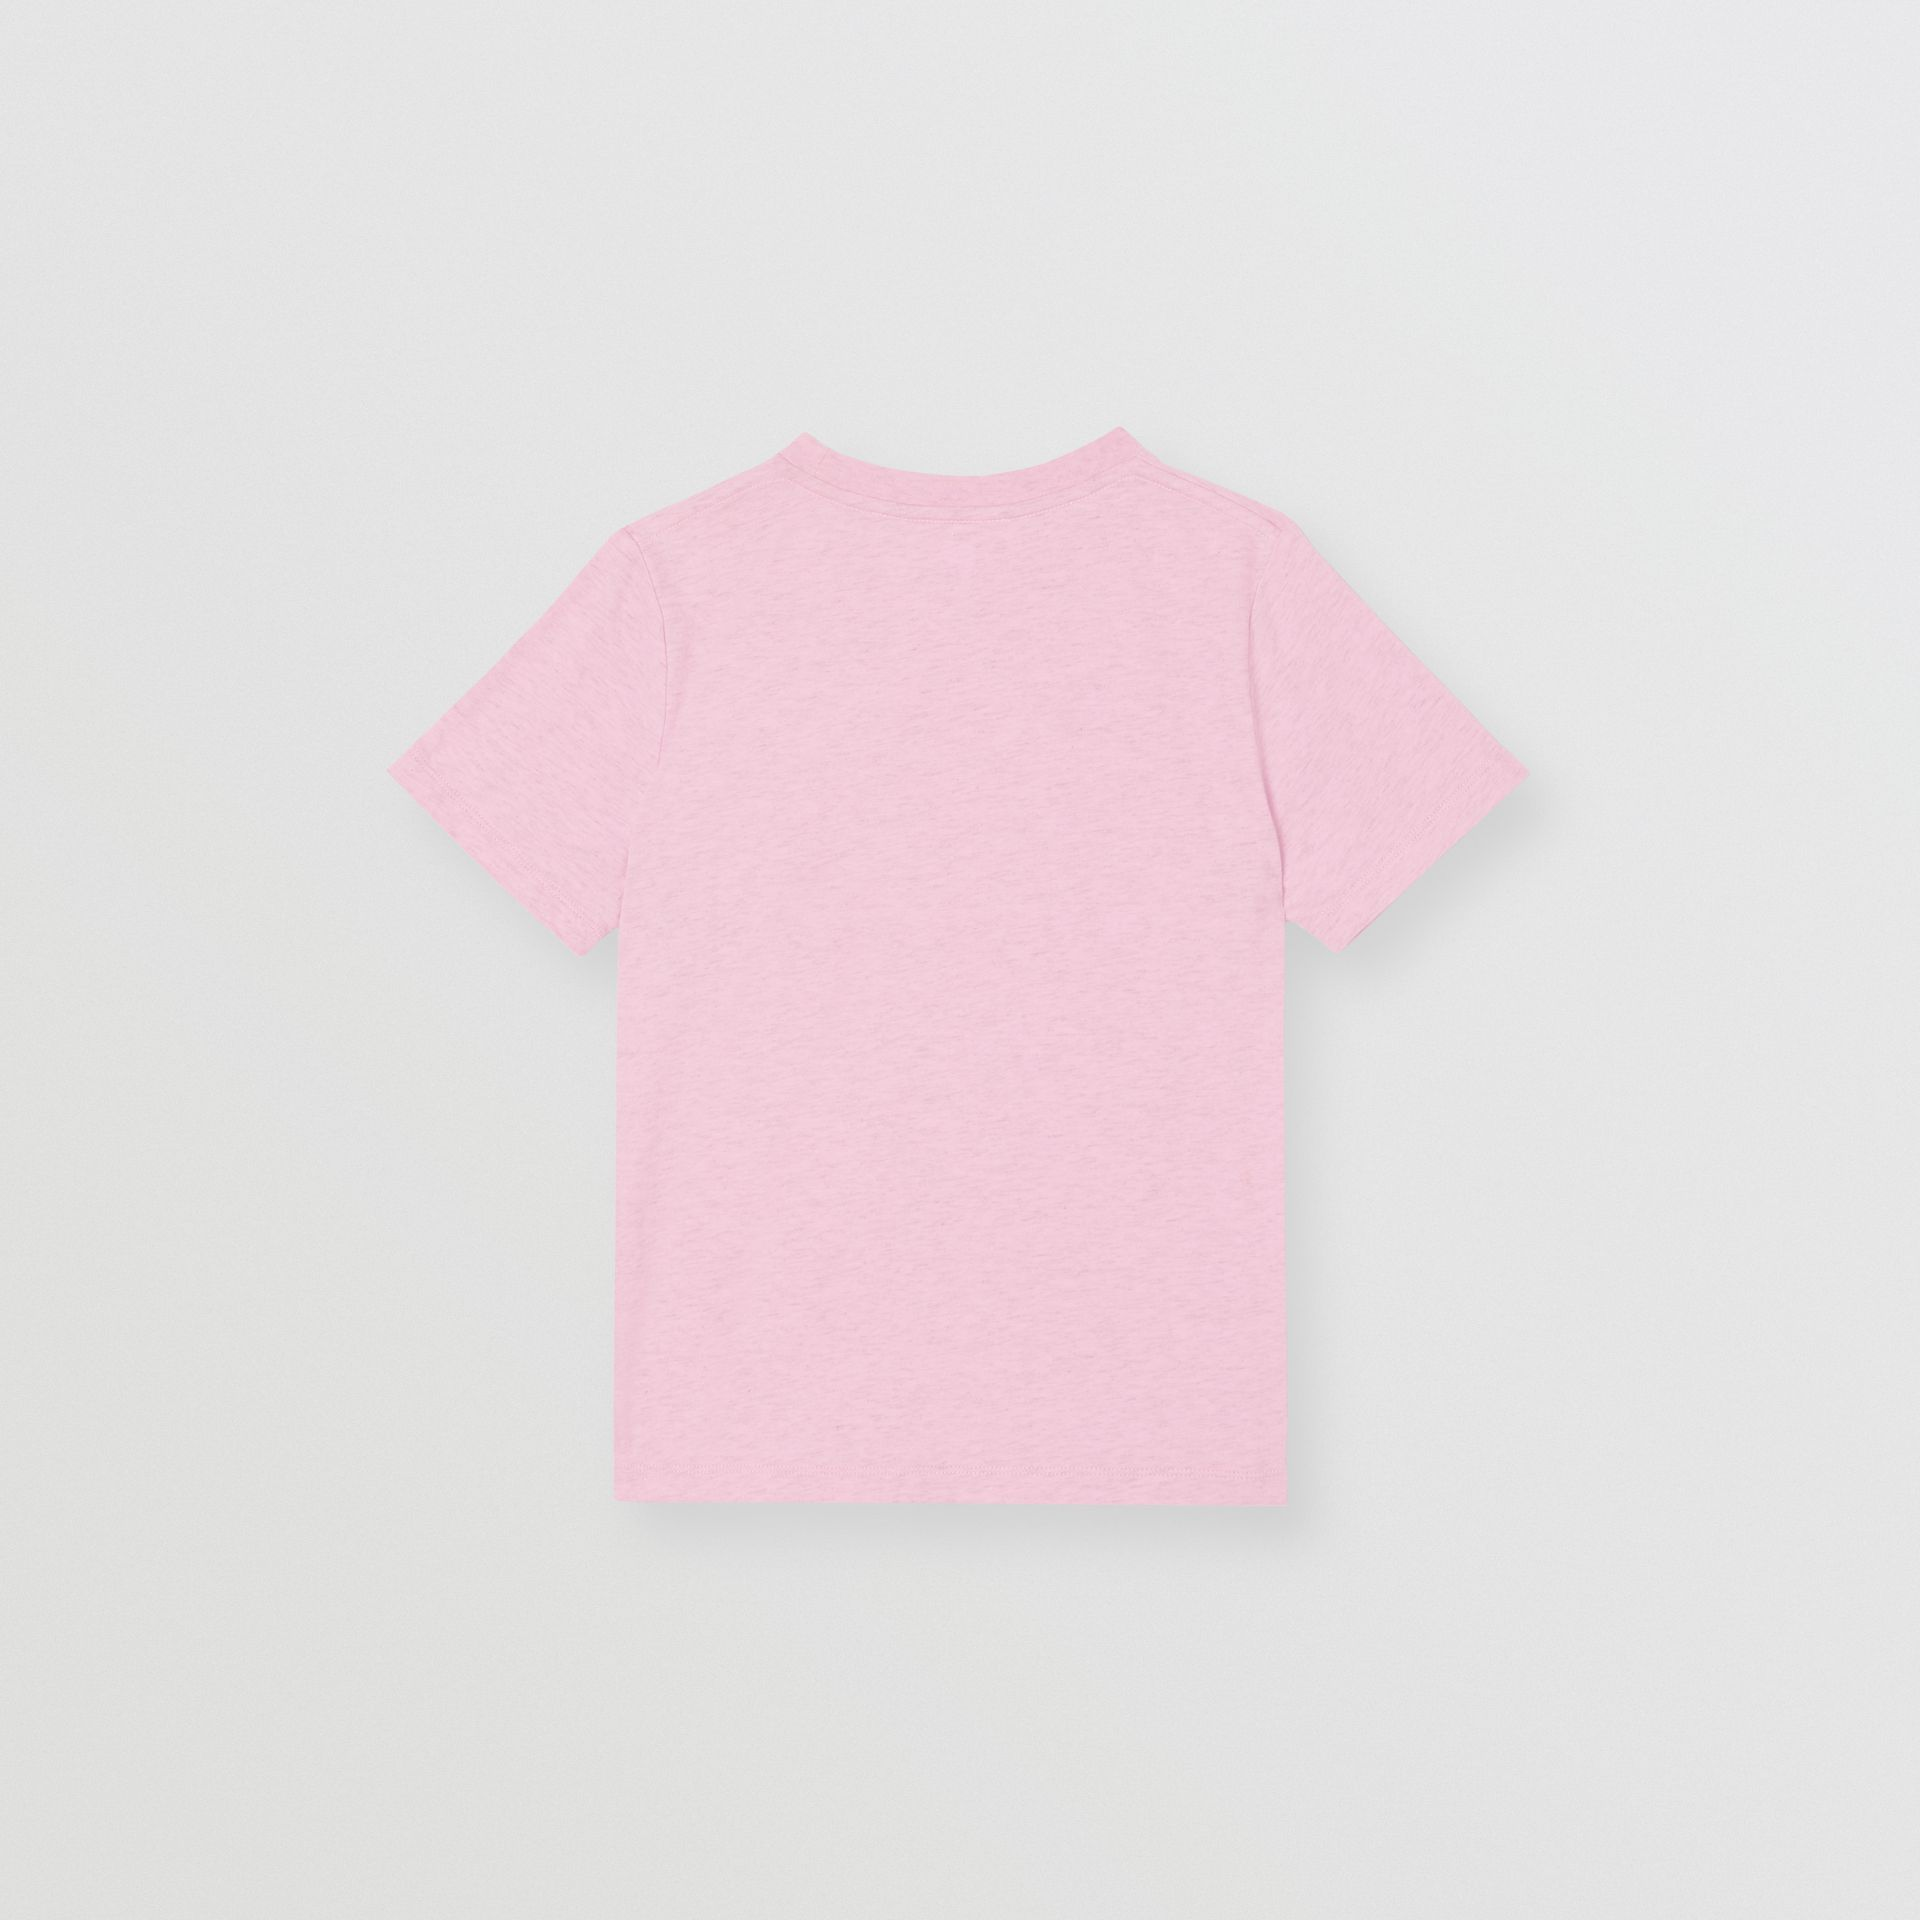 Logo Print Cotton T-shirt in Pale Neon Pink | Burberry Singapore - gallery image 3